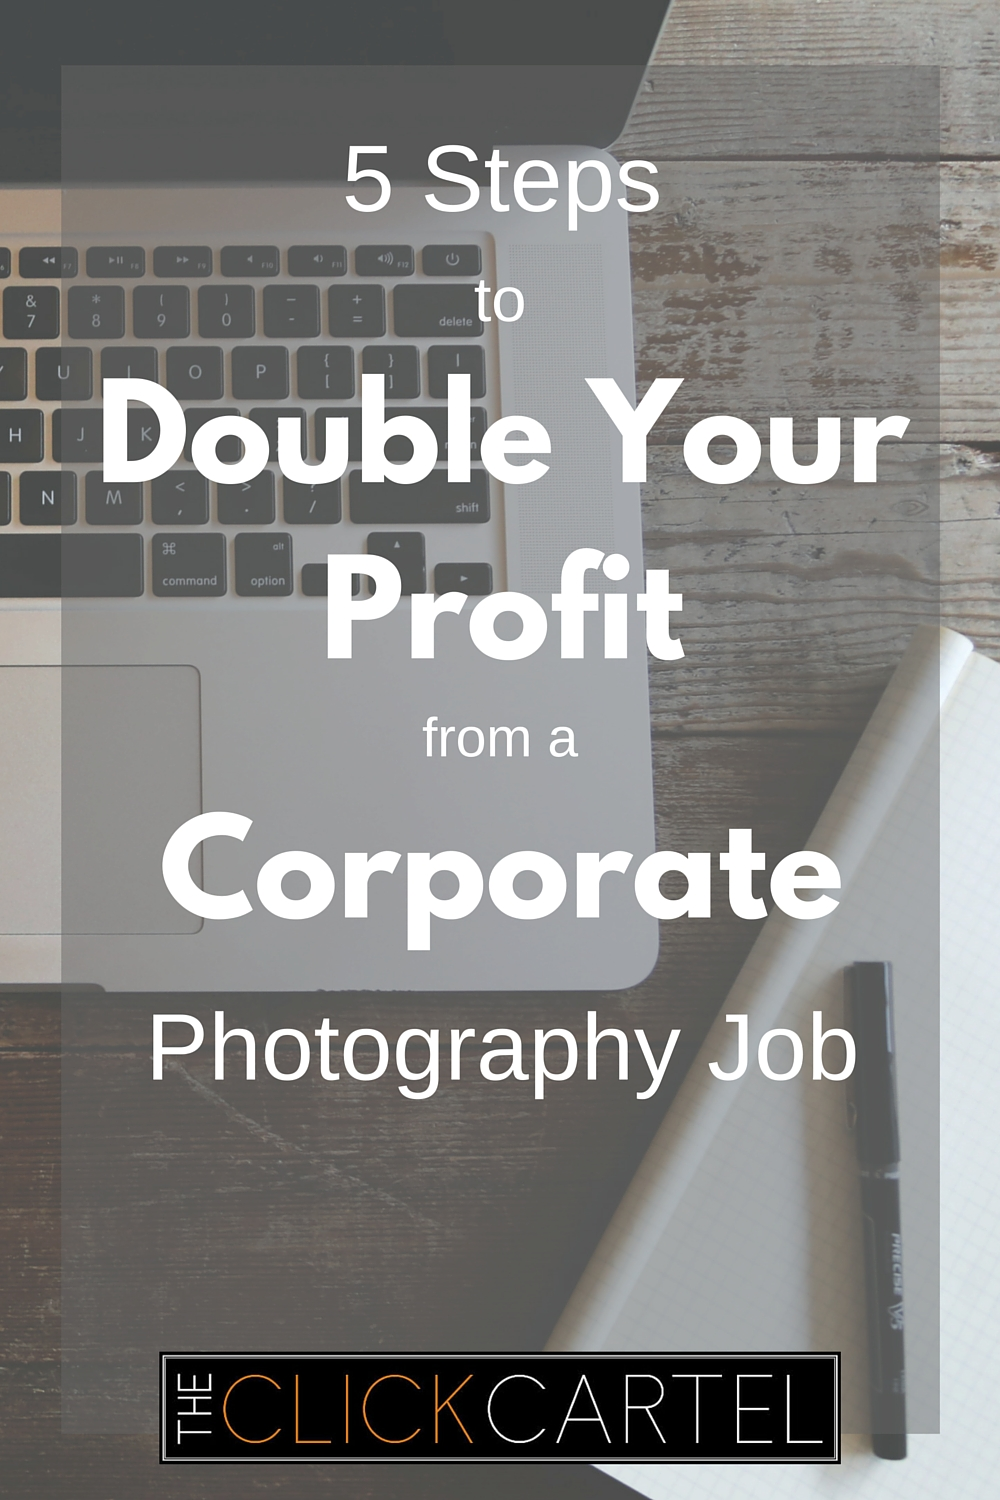 5 Steps to Double Your Profit From a Corporate Photography Job